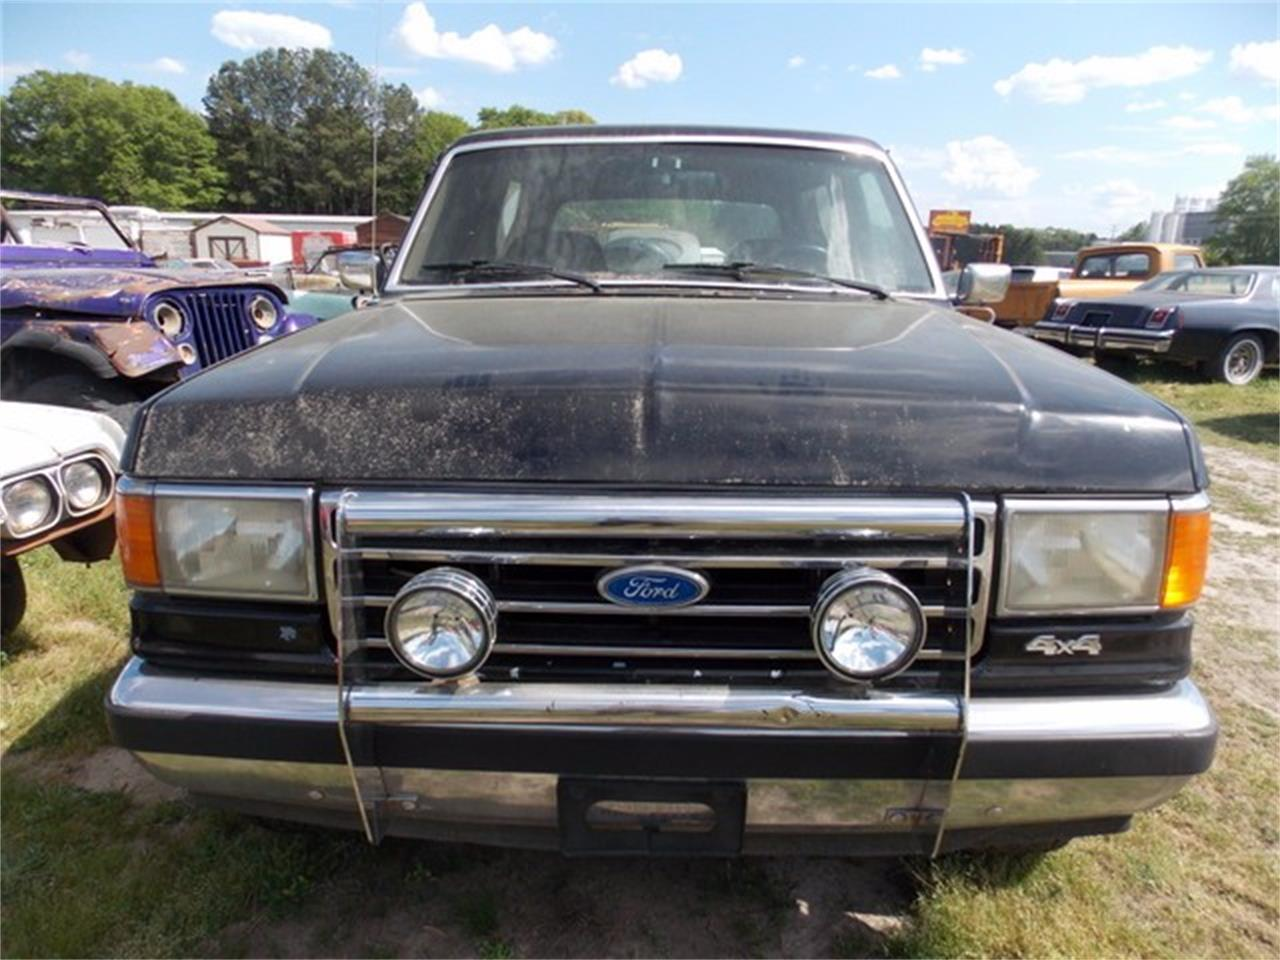 Large Picture of 1990 Ford Bronco - $4,500.00 Offered by Classic Cars of South Carolina - KXJP